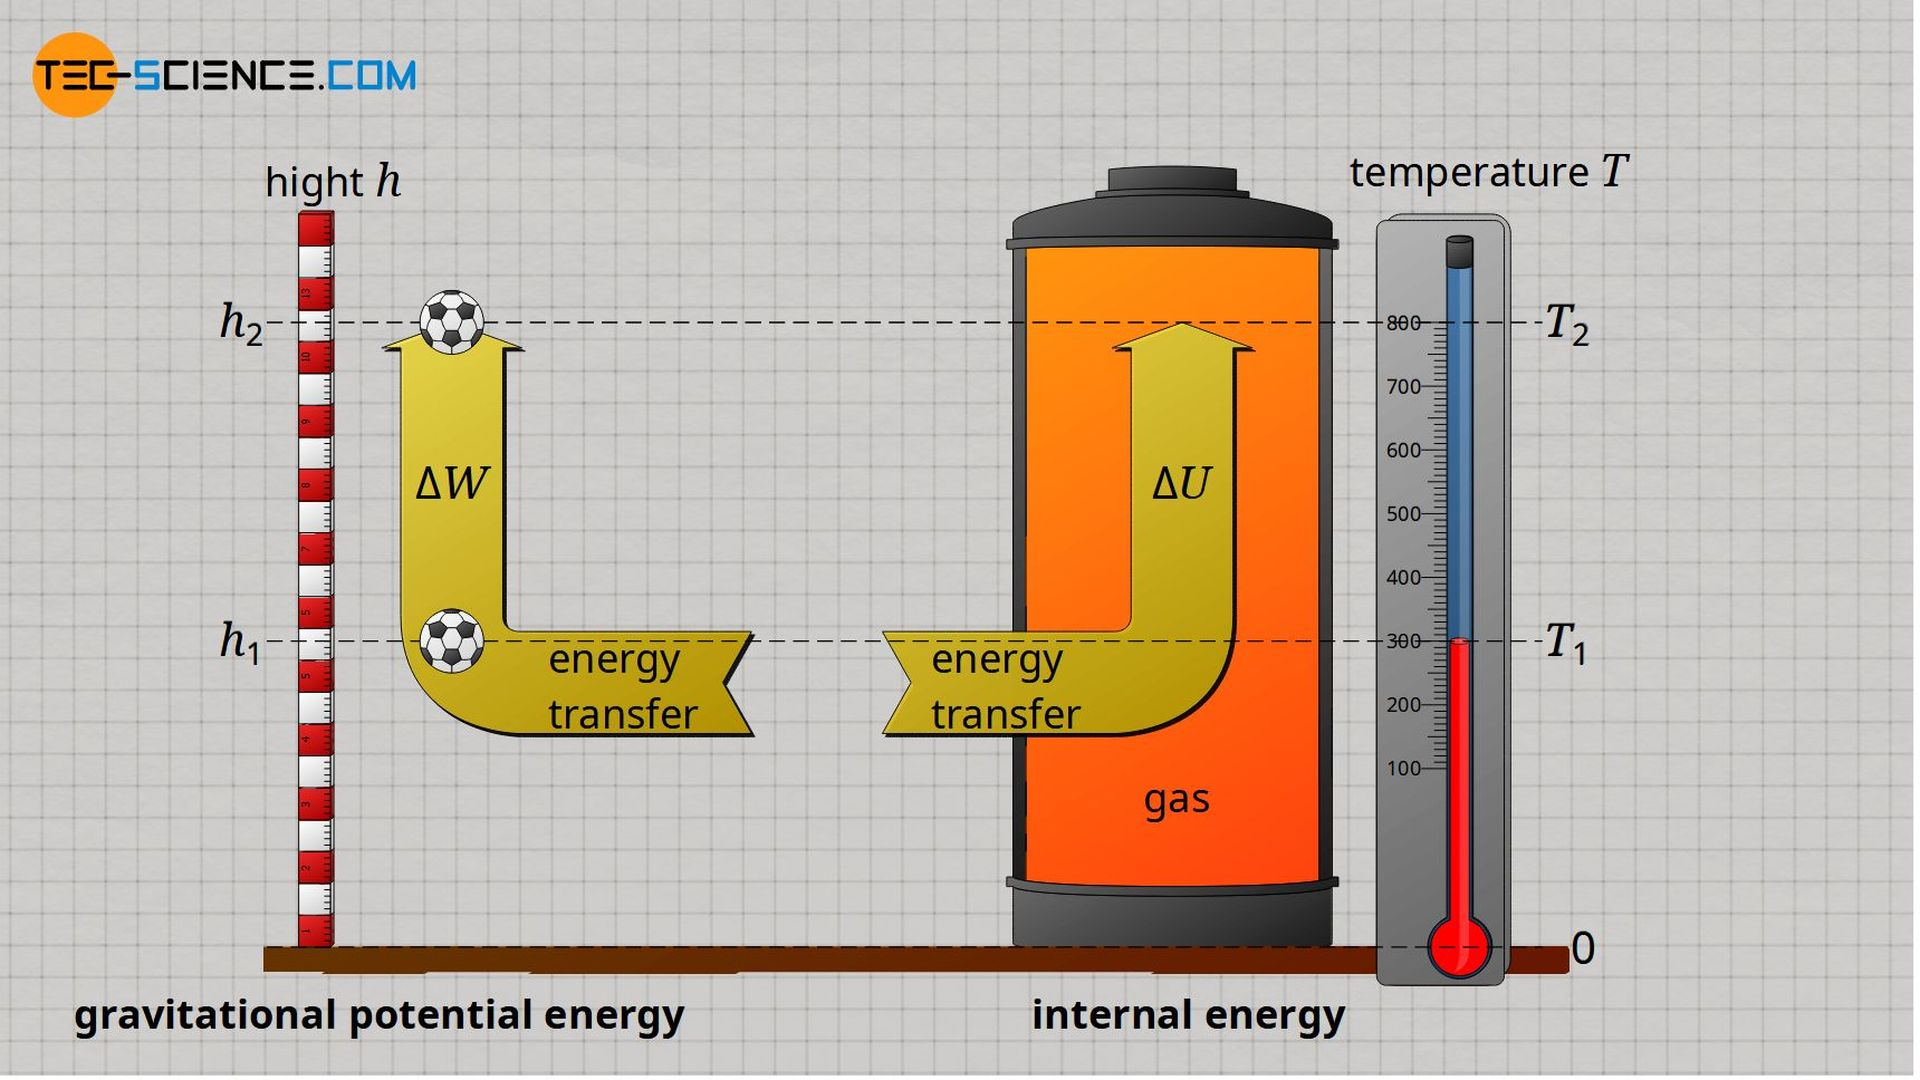 Analogy between potential energy and internal energy